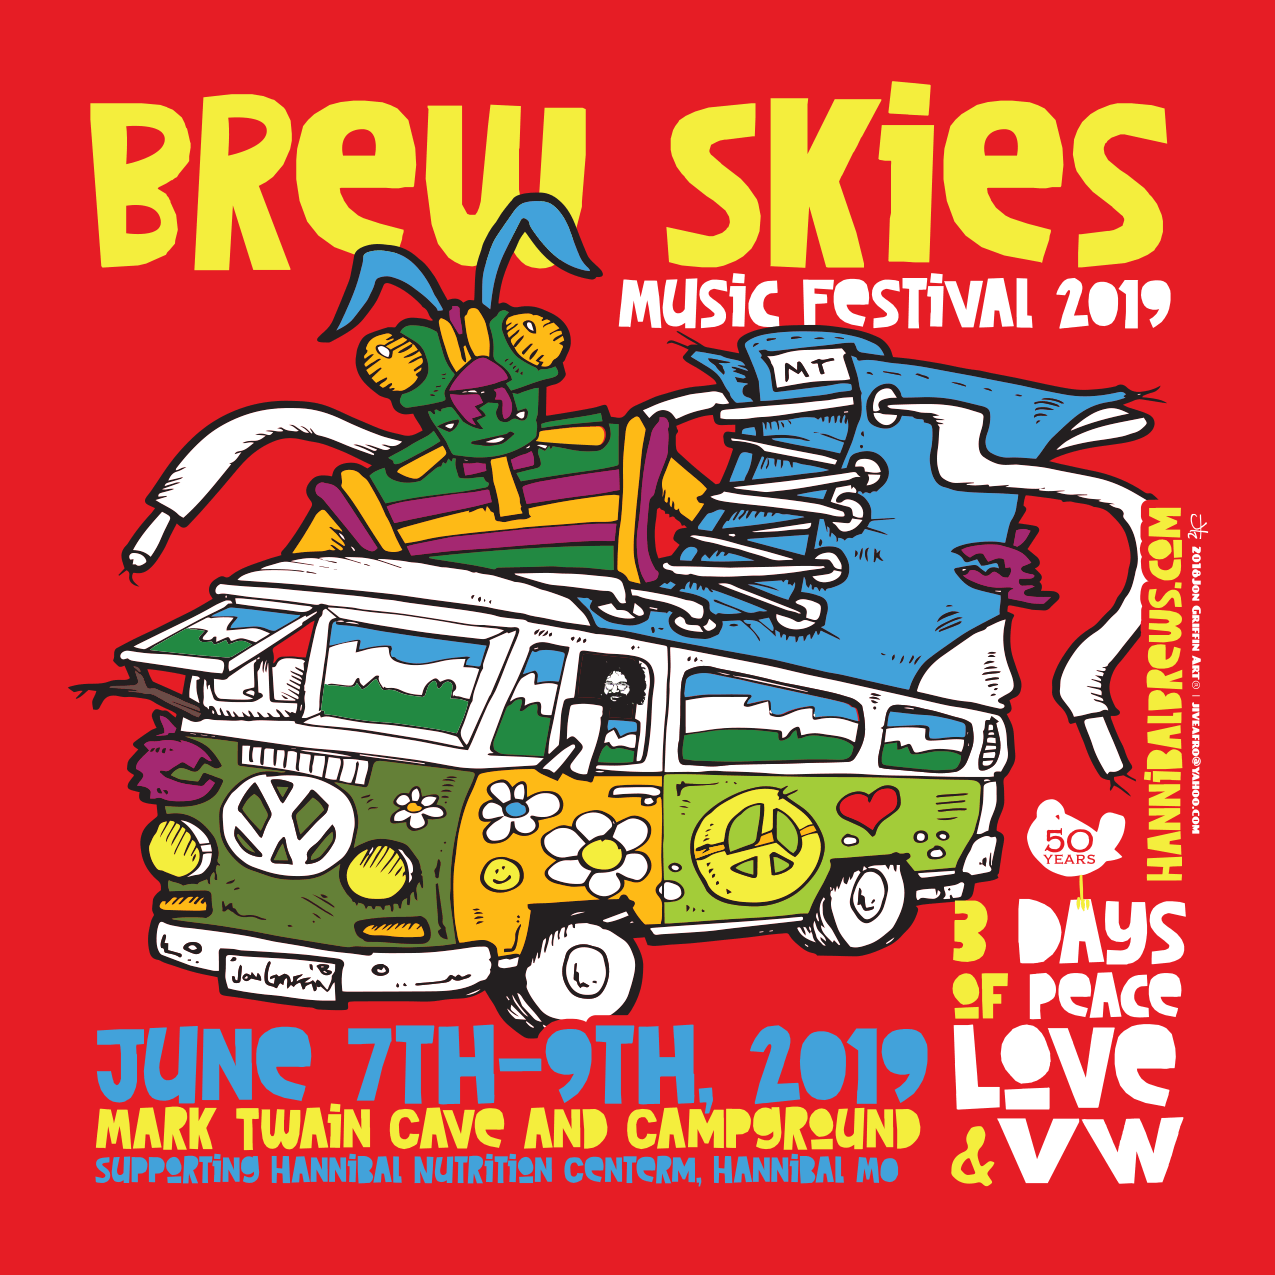 Brew Skies Music Festival - Hannibal, MO